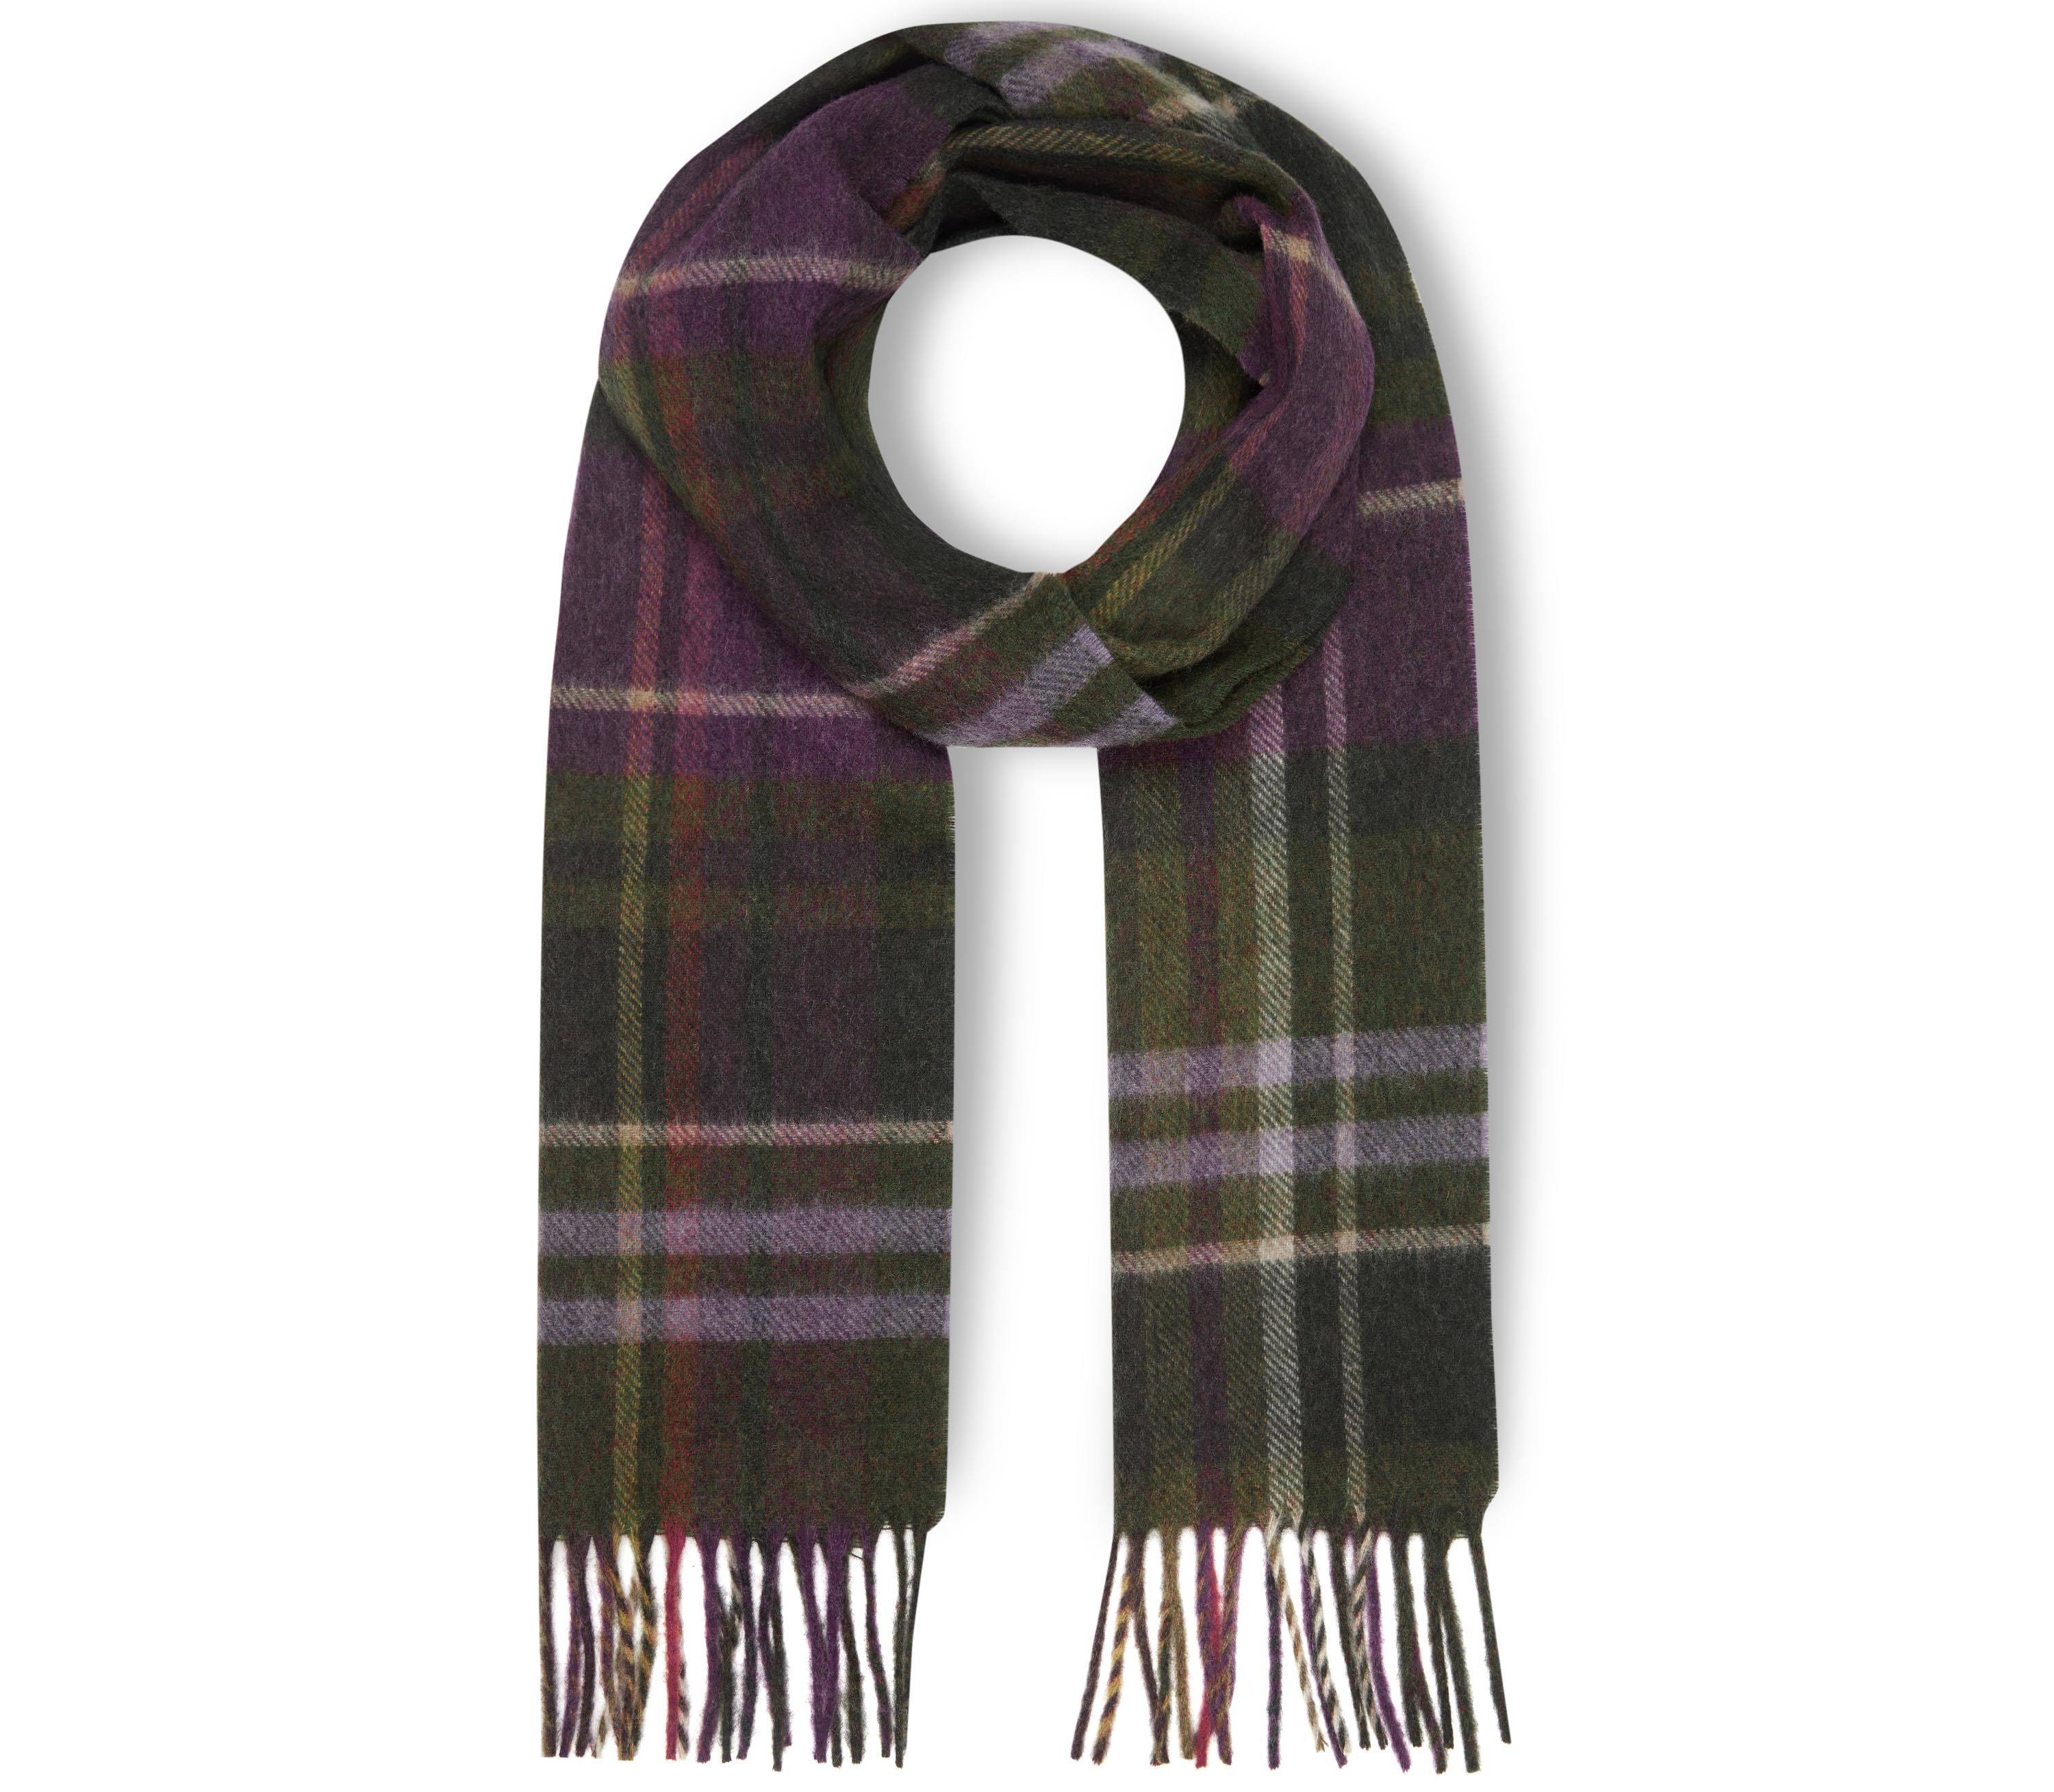 Laura Ashley Moons Wool Check Scarf